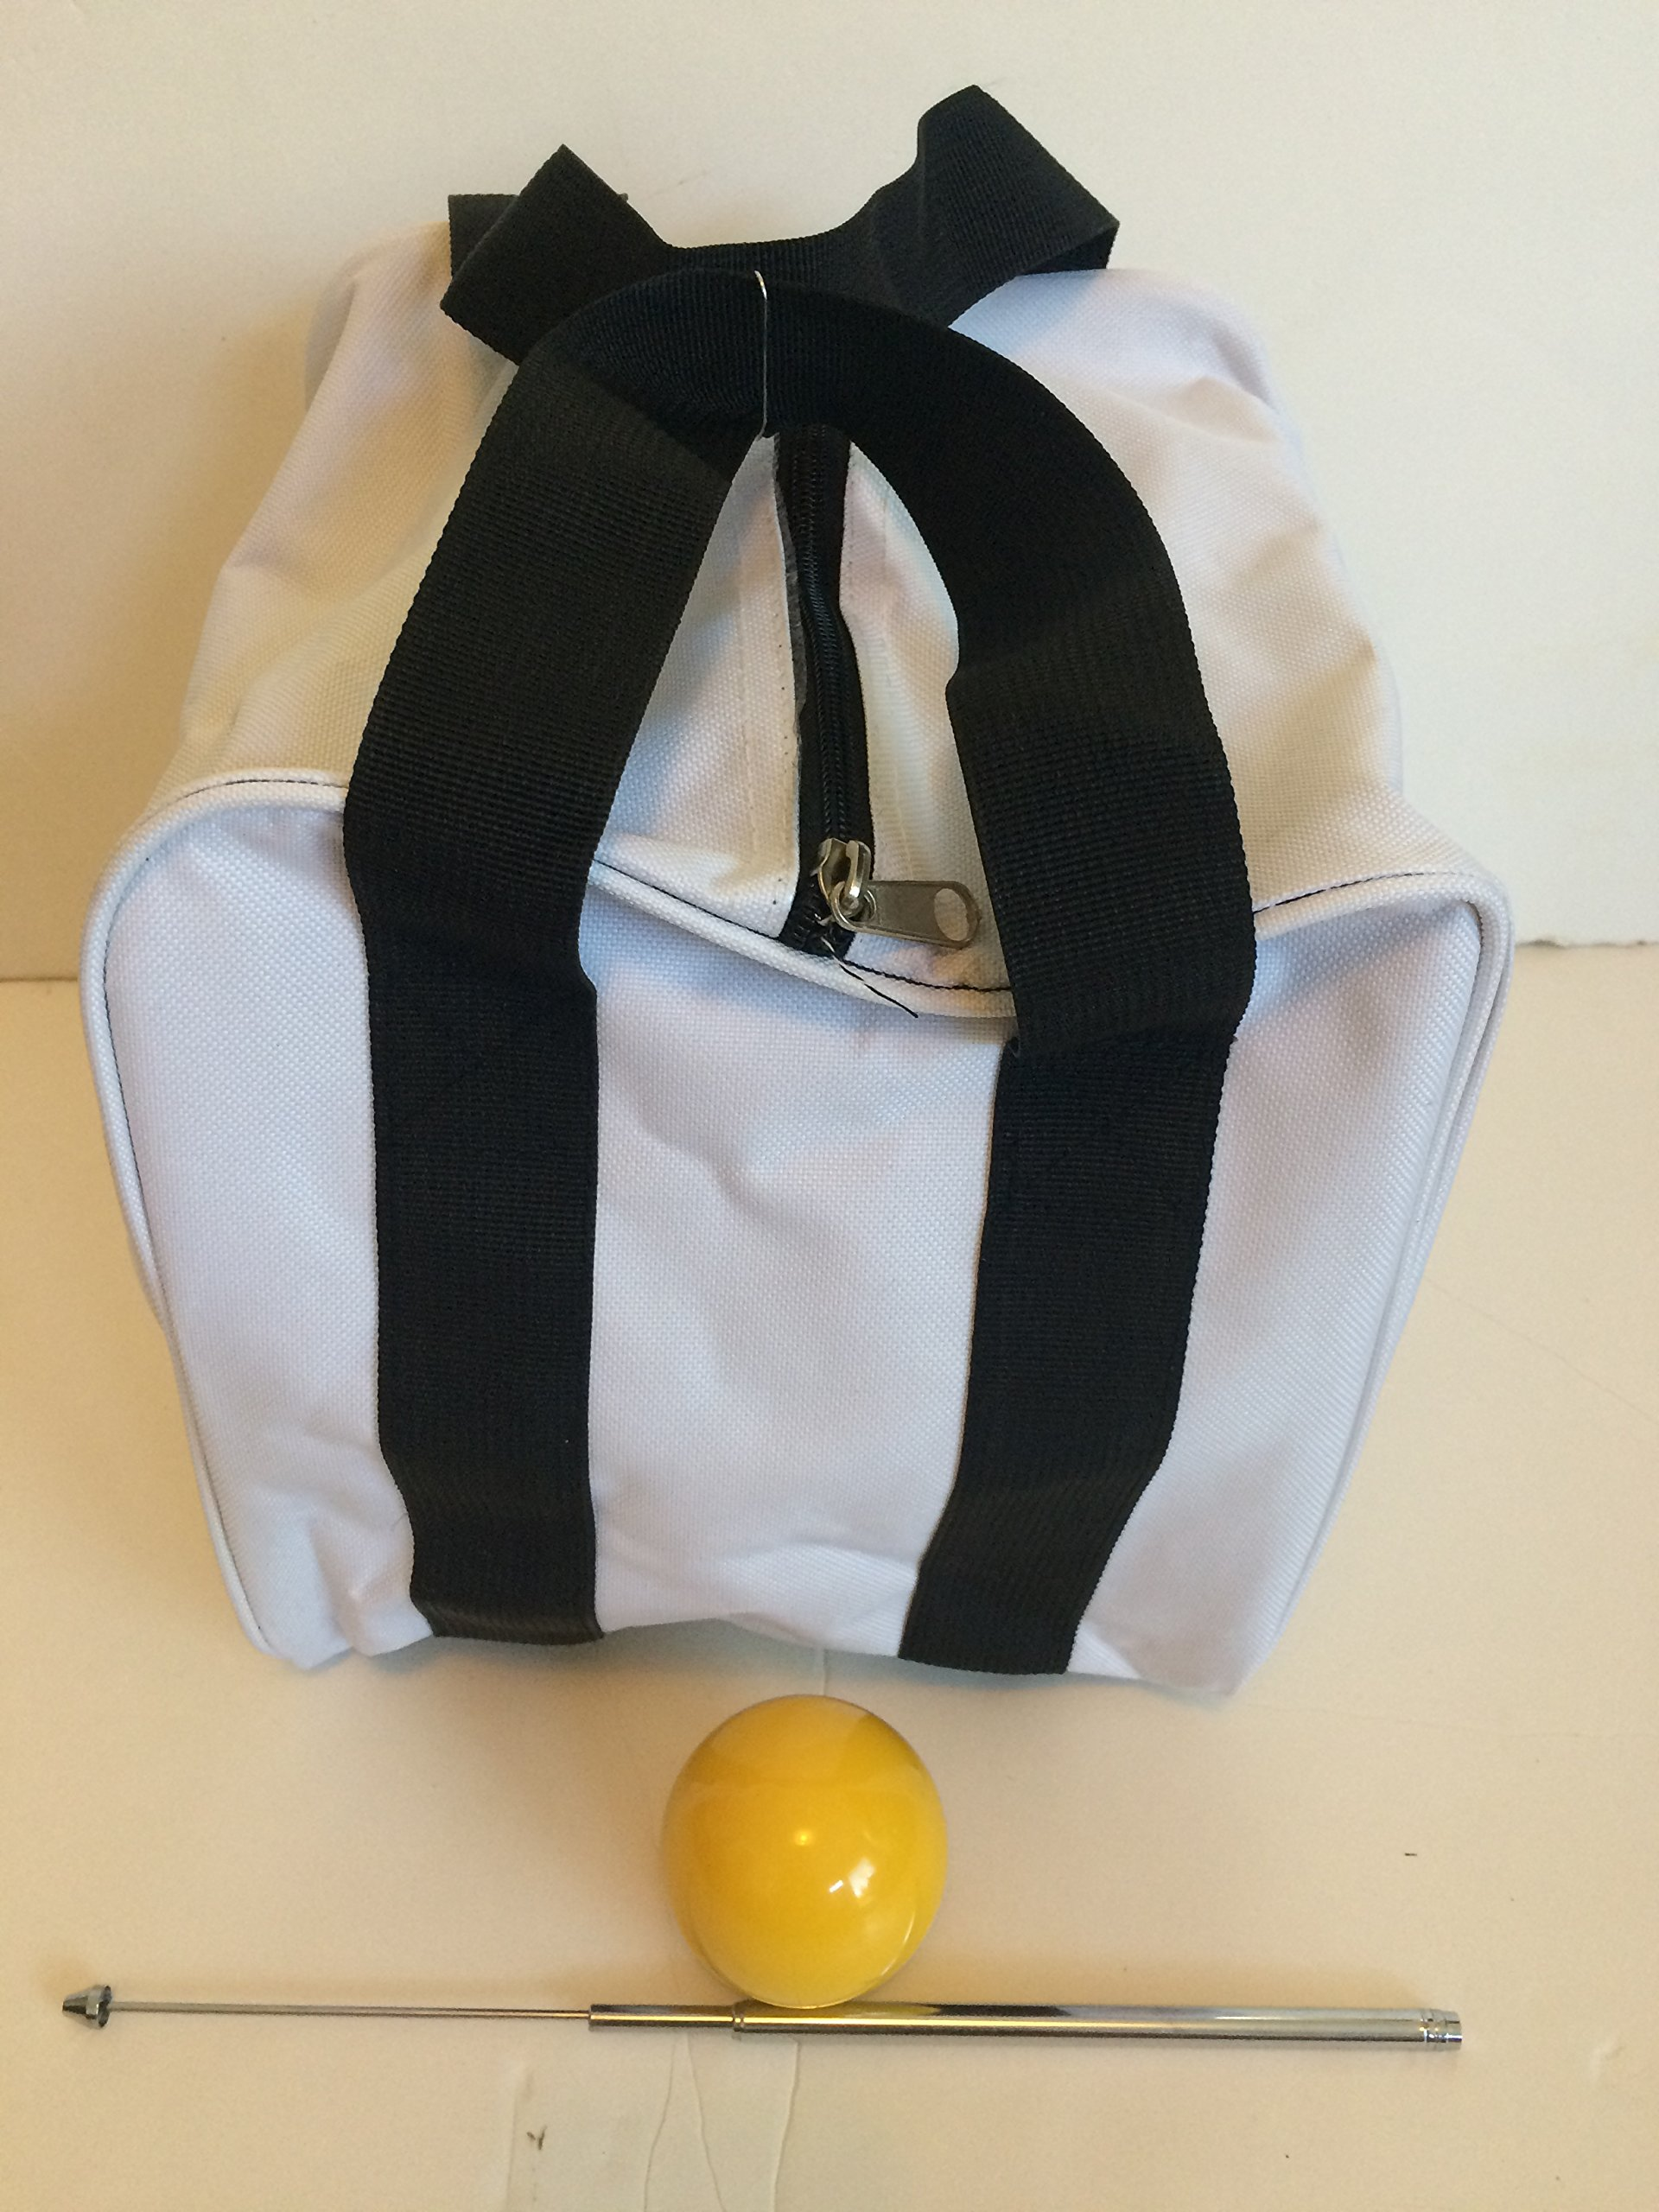 Unique Bocce Accessories Package - Extra Heavy Duty Nylon Bocce Bag (White with Black Handles), Yellow pallina, Extendable Measuring Device